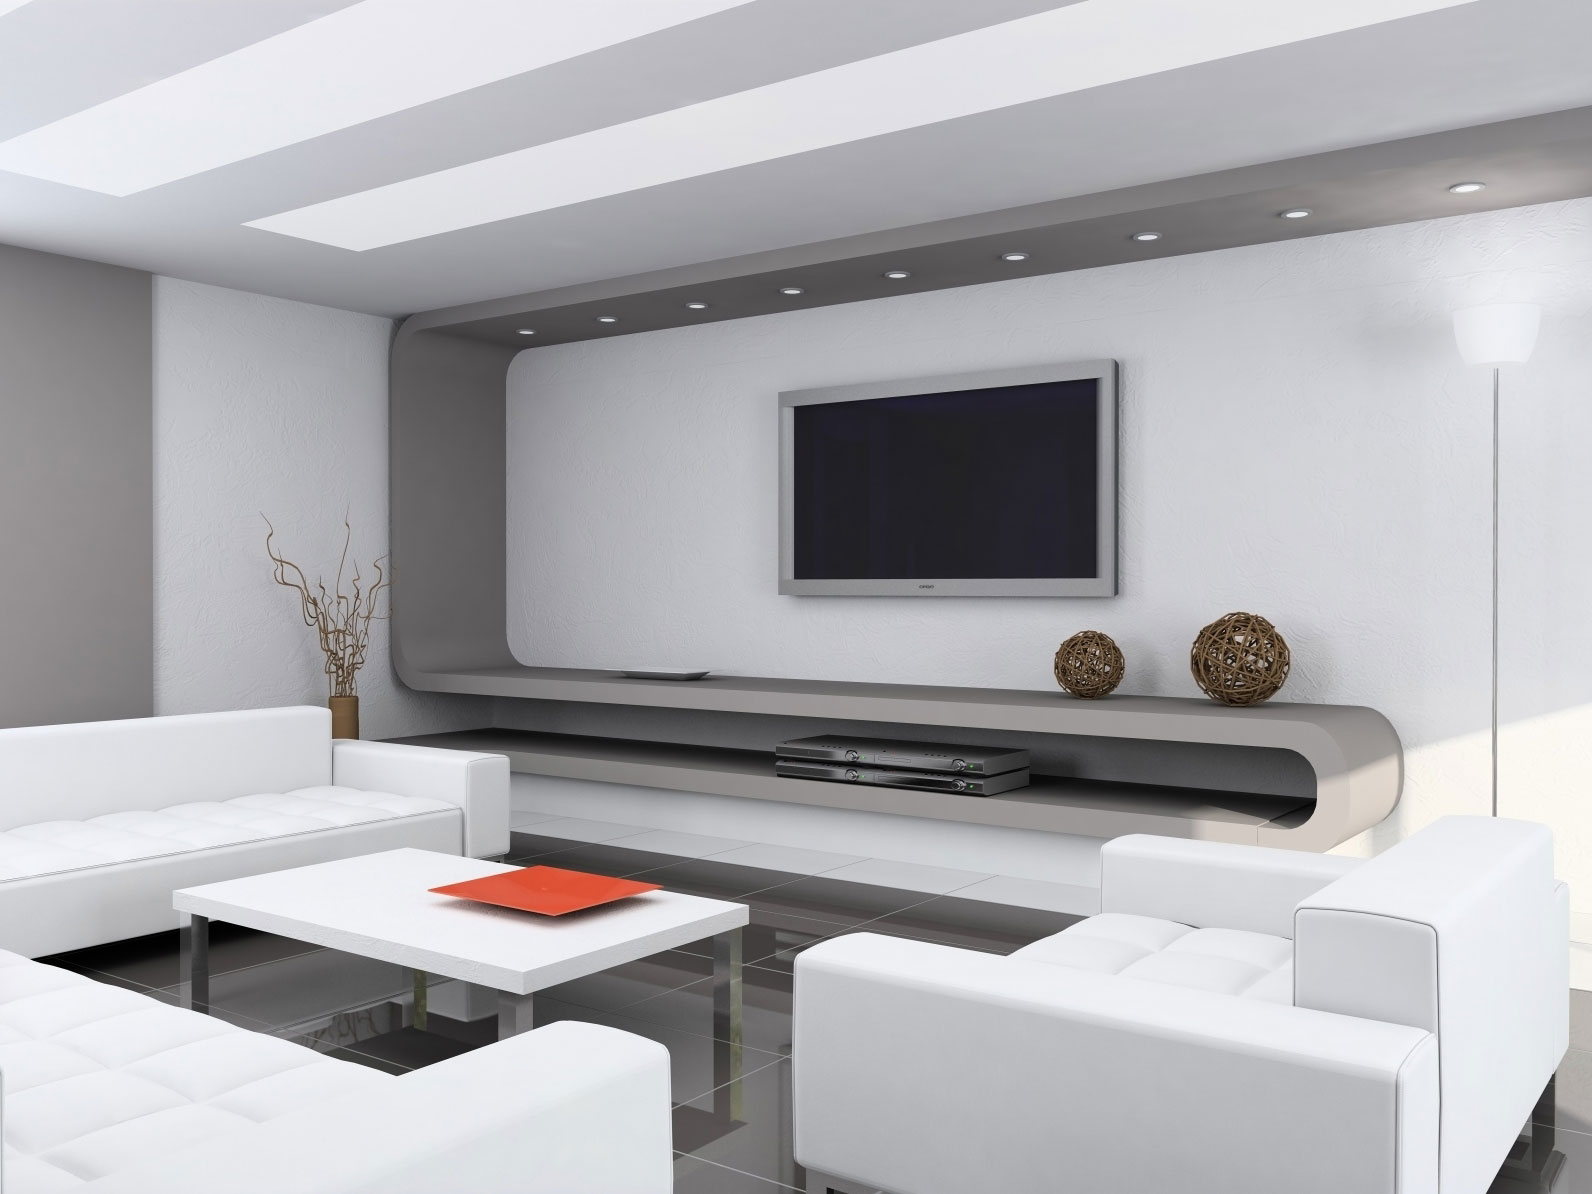 Design.nu2: home design with minimalist interior design